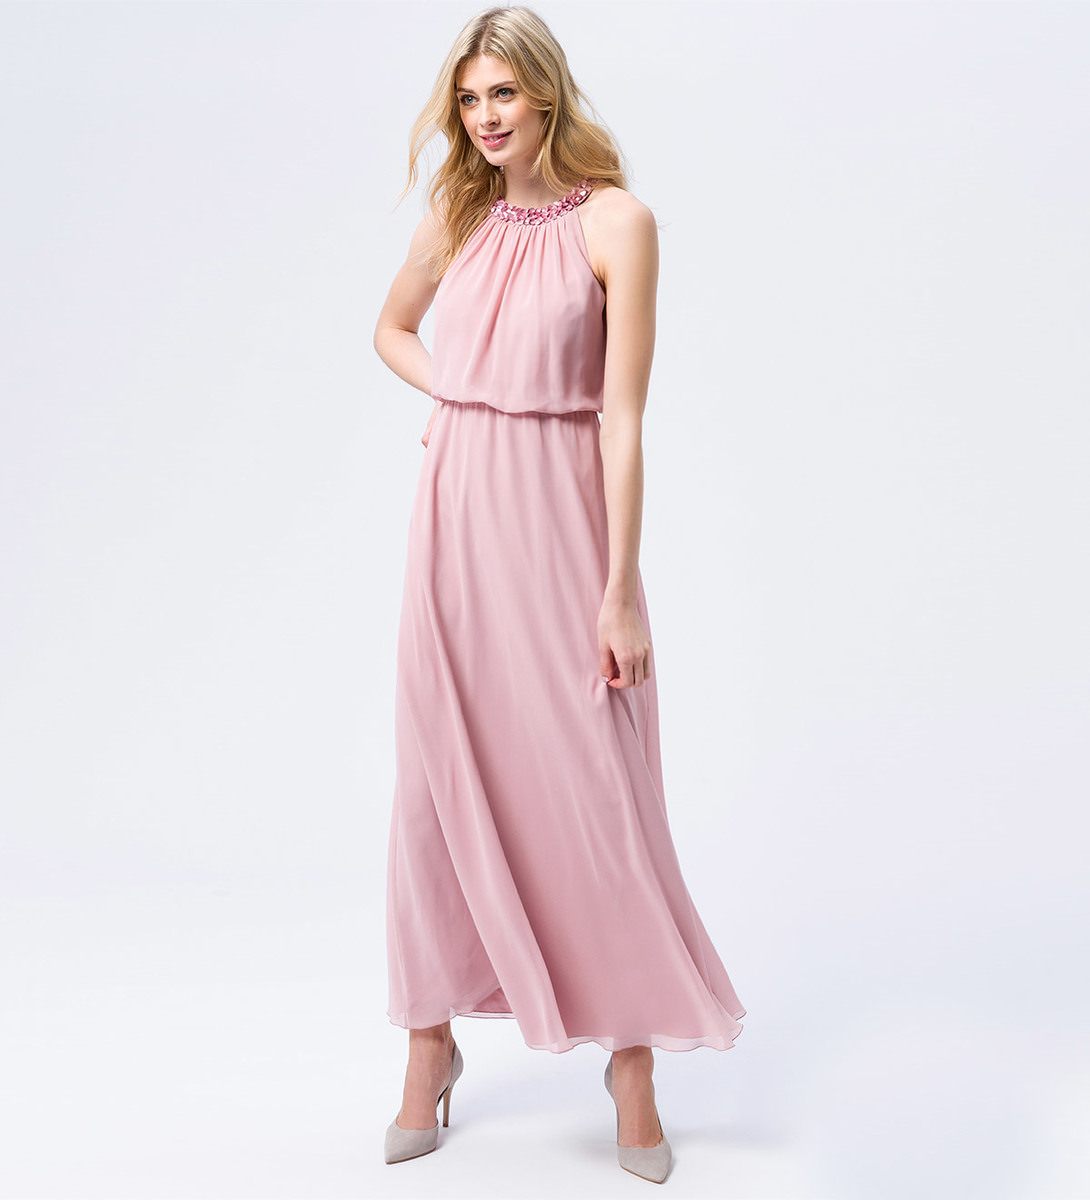 Kleid mit Paillettenkragen in marshmallow rose